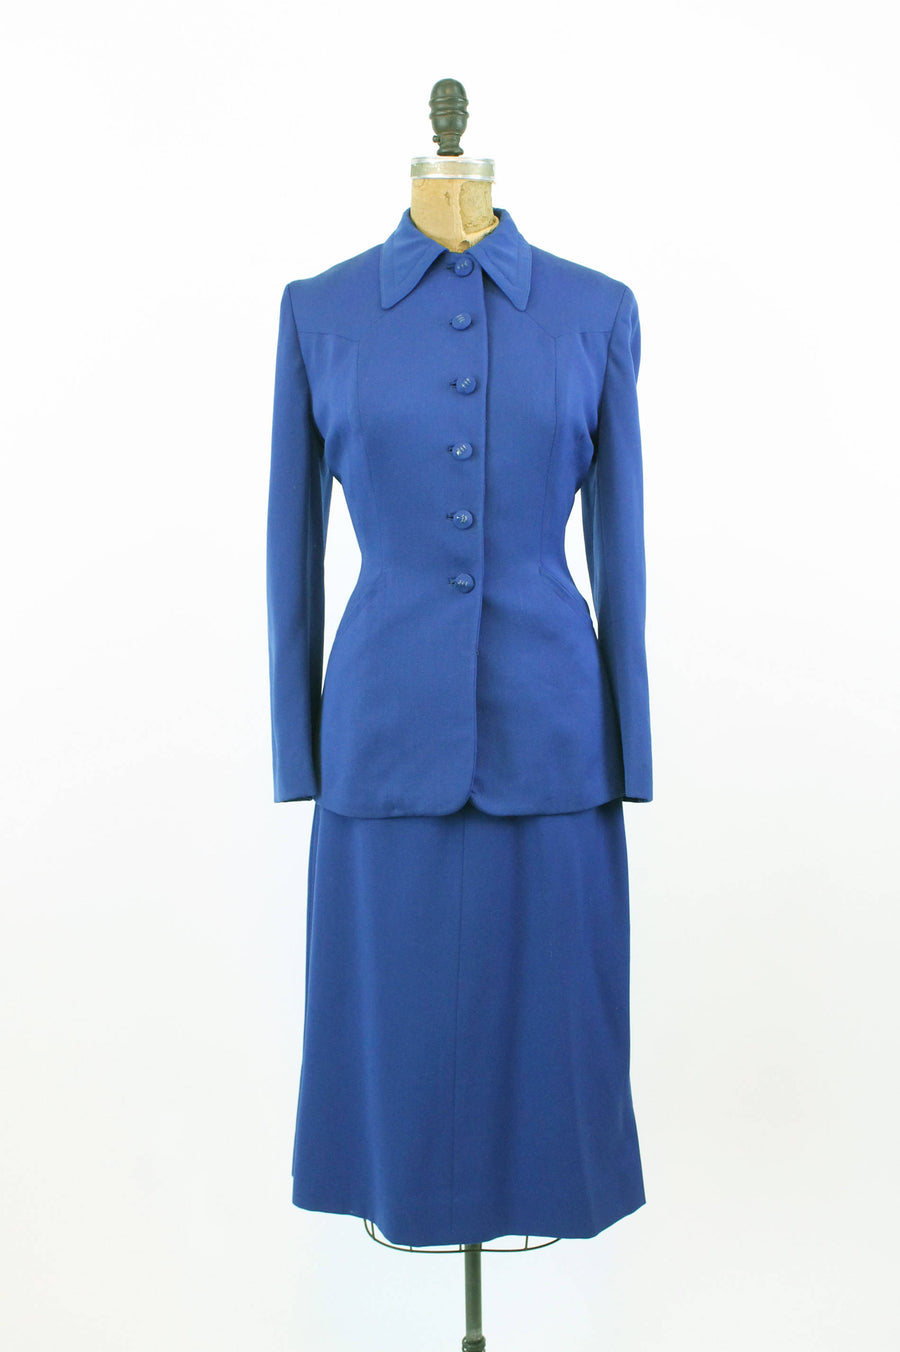 1950s wool gaberdine suit | vintage jacket and skirt | small